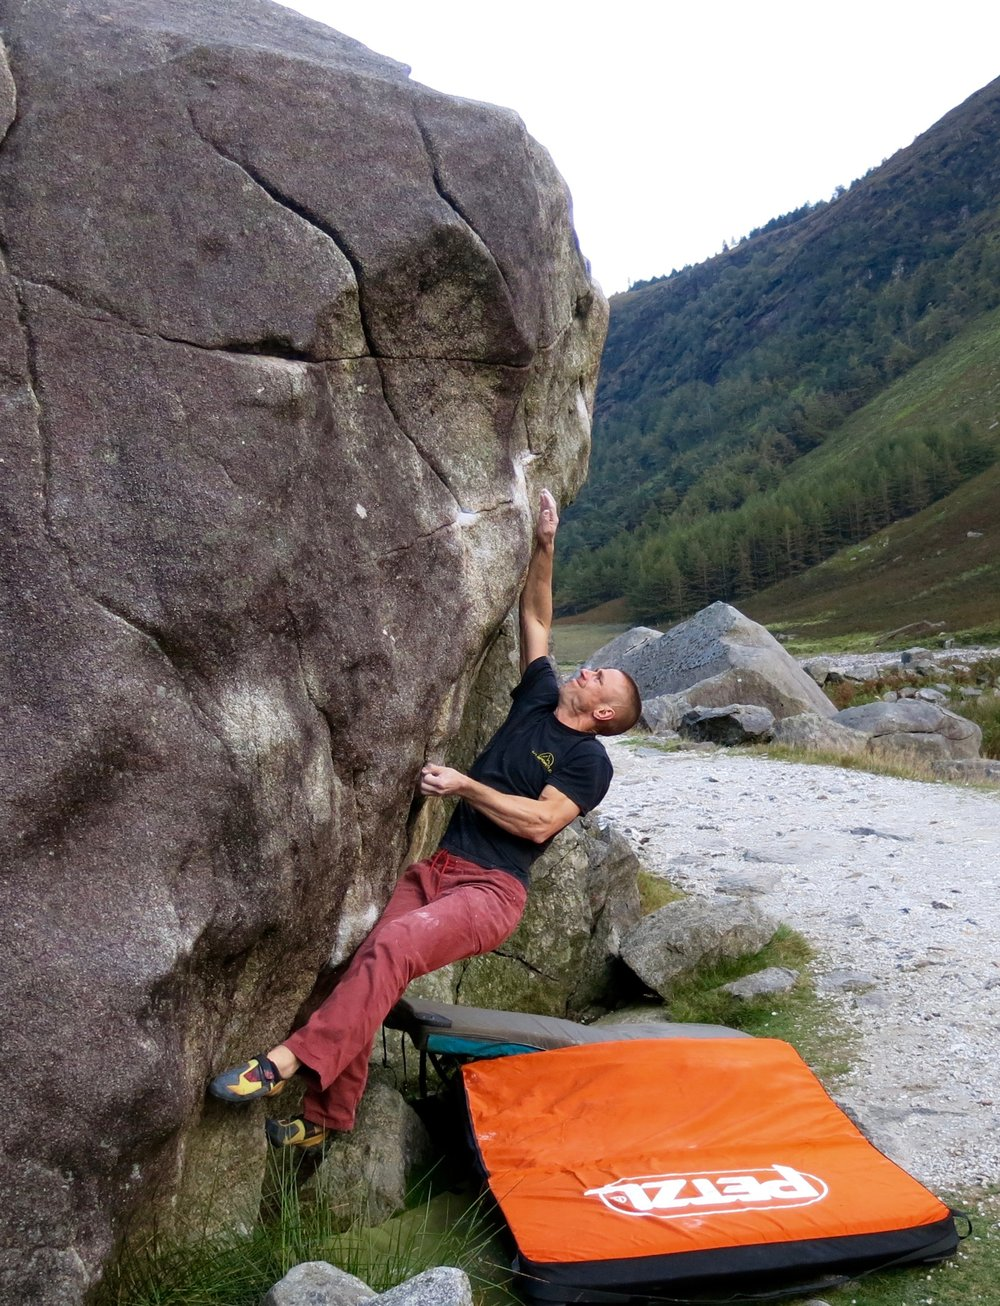 Bouldering at Glendalough in Ireland in 2016 with the Cirro pad.